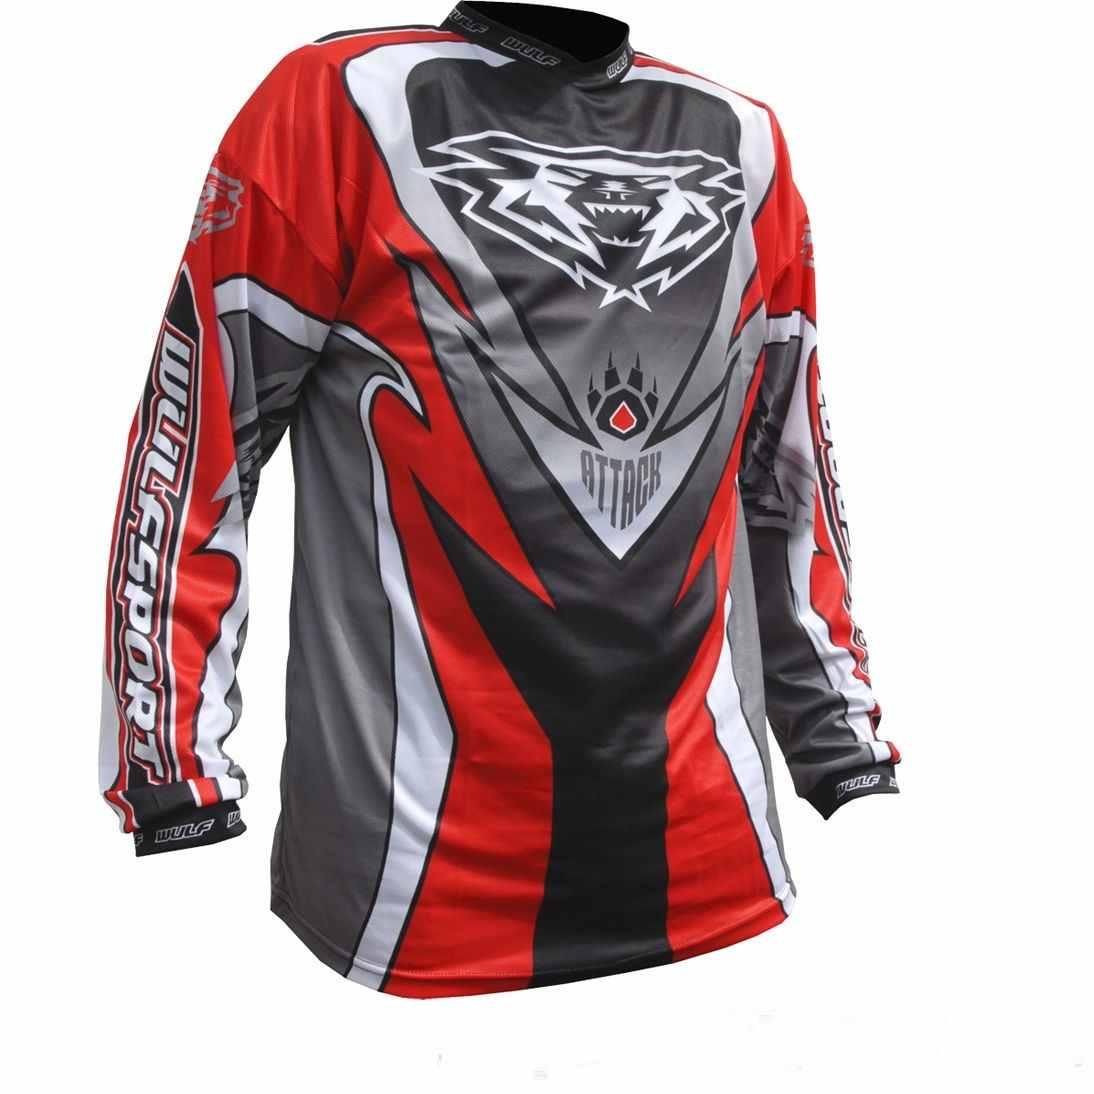 Wulfsport ATTACK Cub Race Shirt - Red